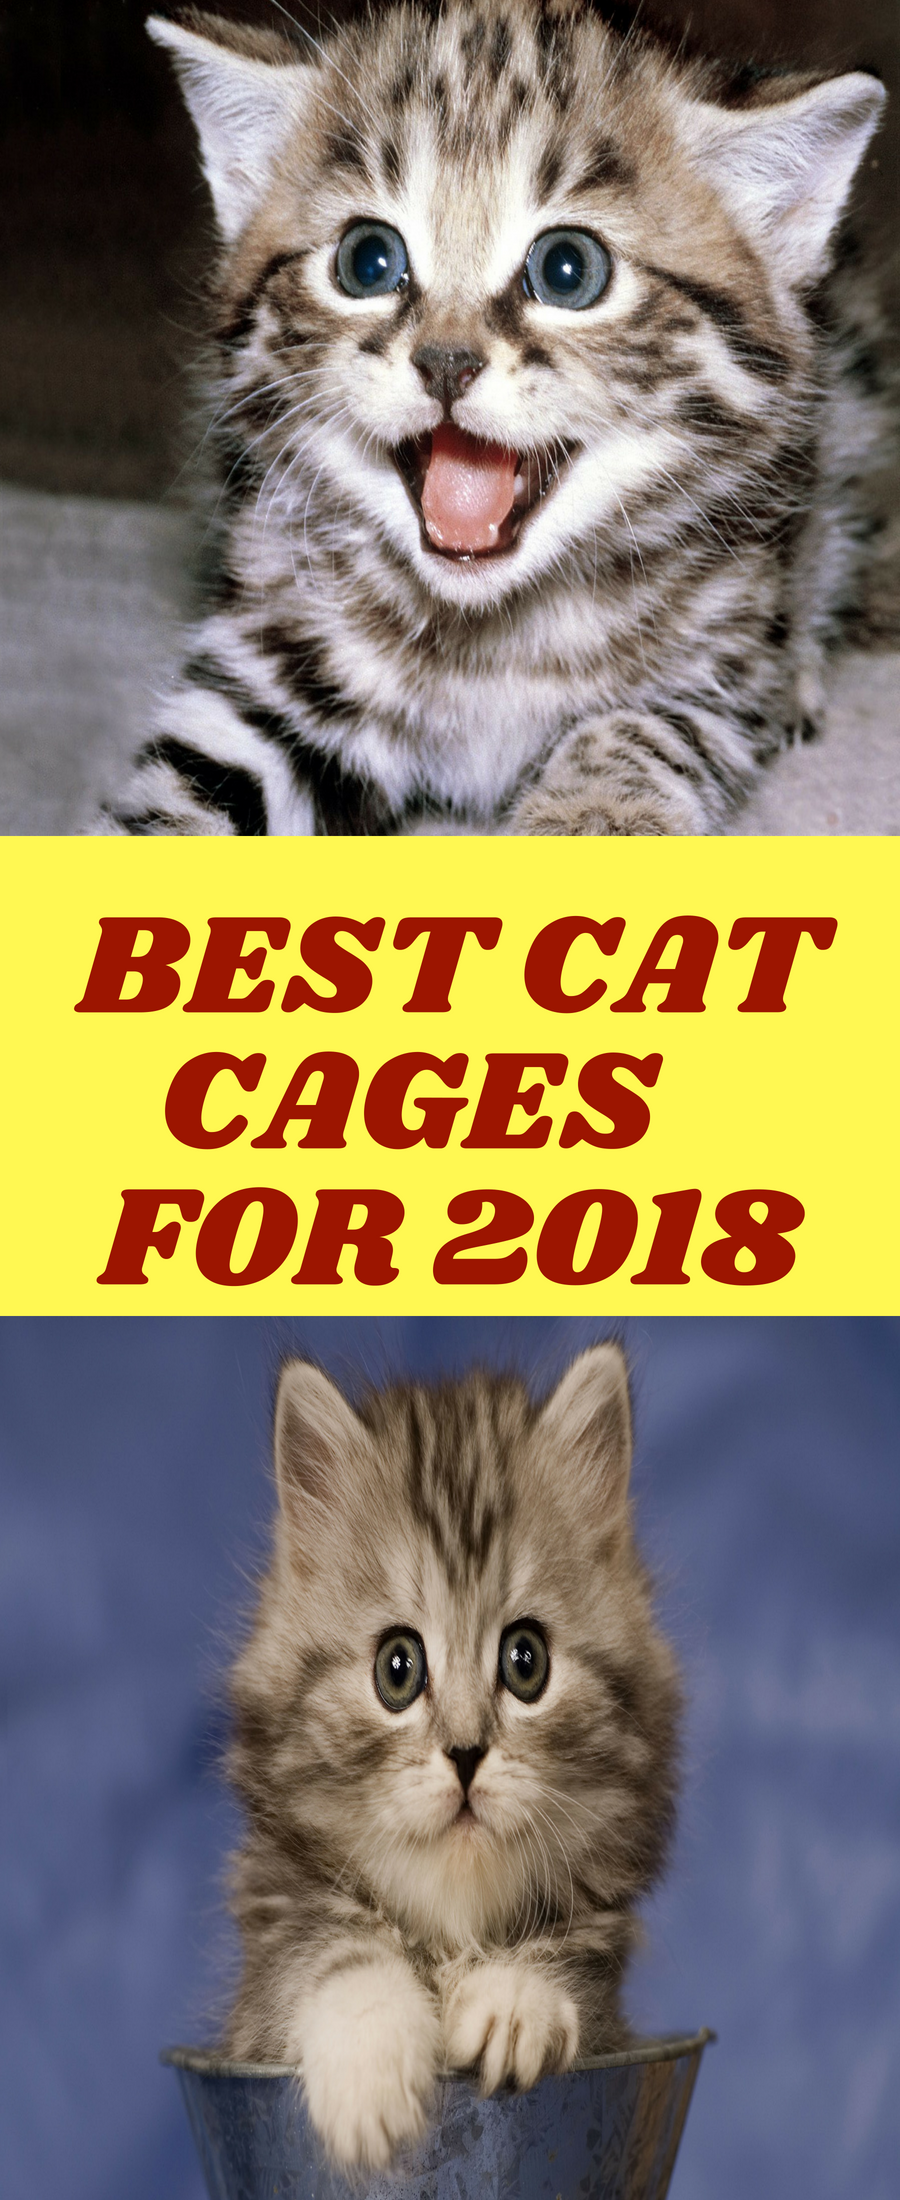 Top 10 Cat Cages In 2018 Best Pets Supplies Cat Cages Cats Raining Cats And Dogs